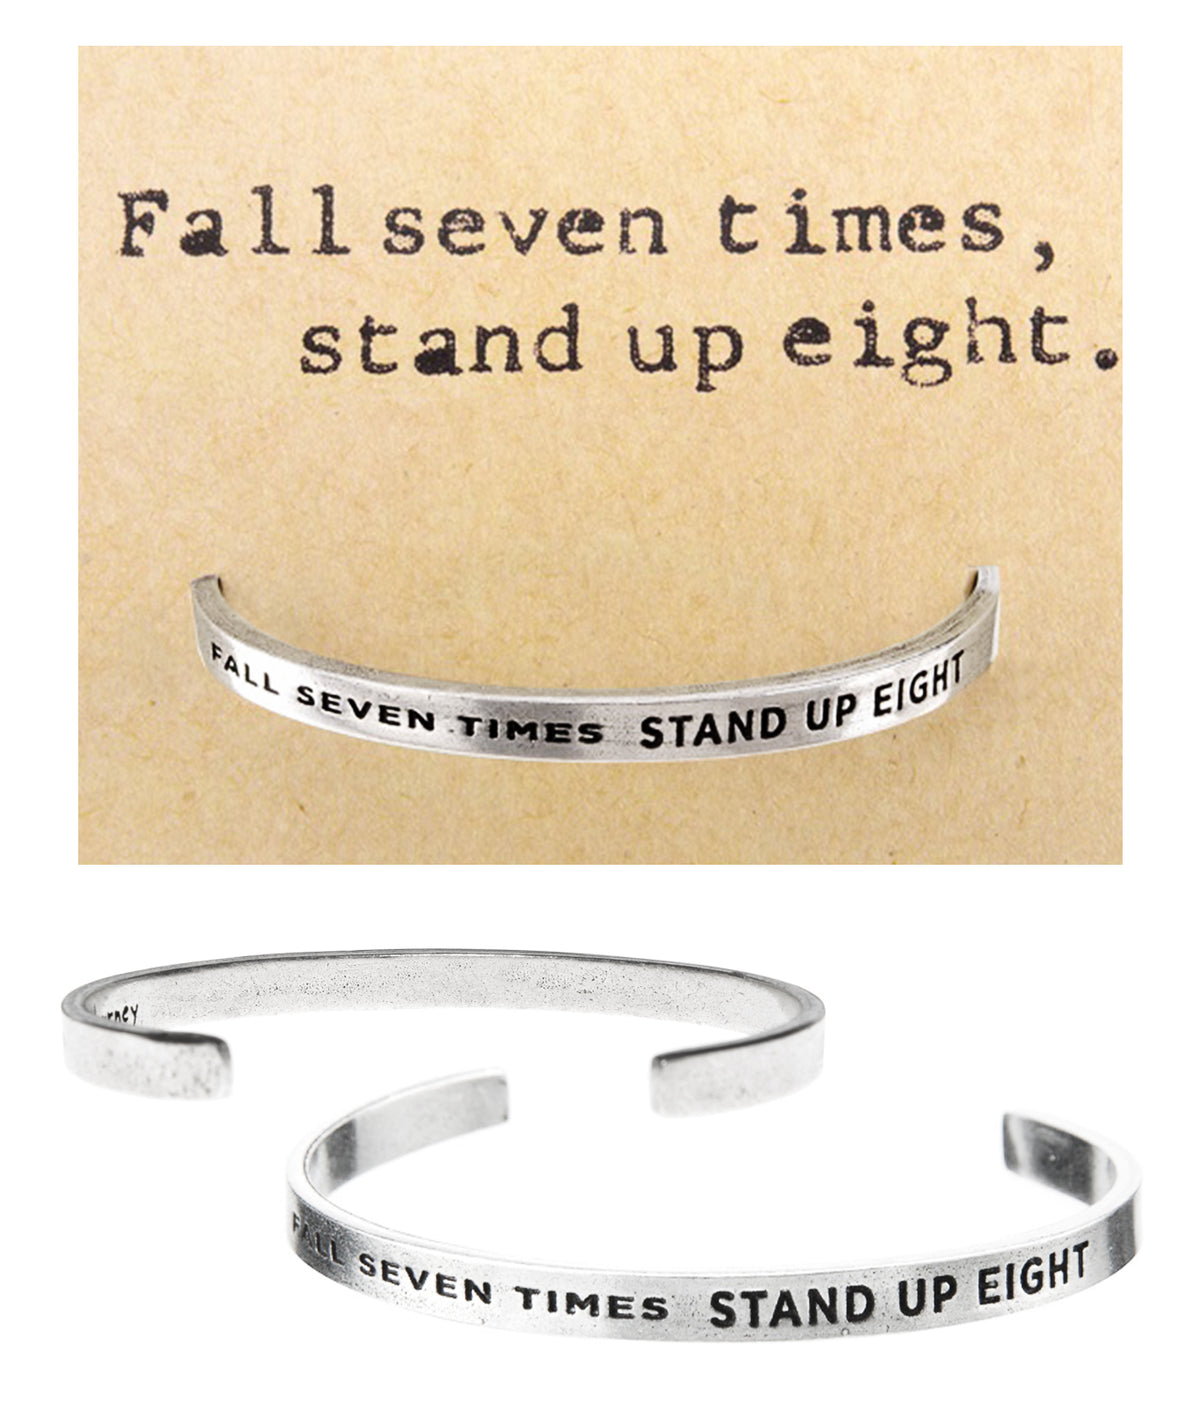 Fall 7 Times, Stand Up 8 Quotable Cuff Bracelet